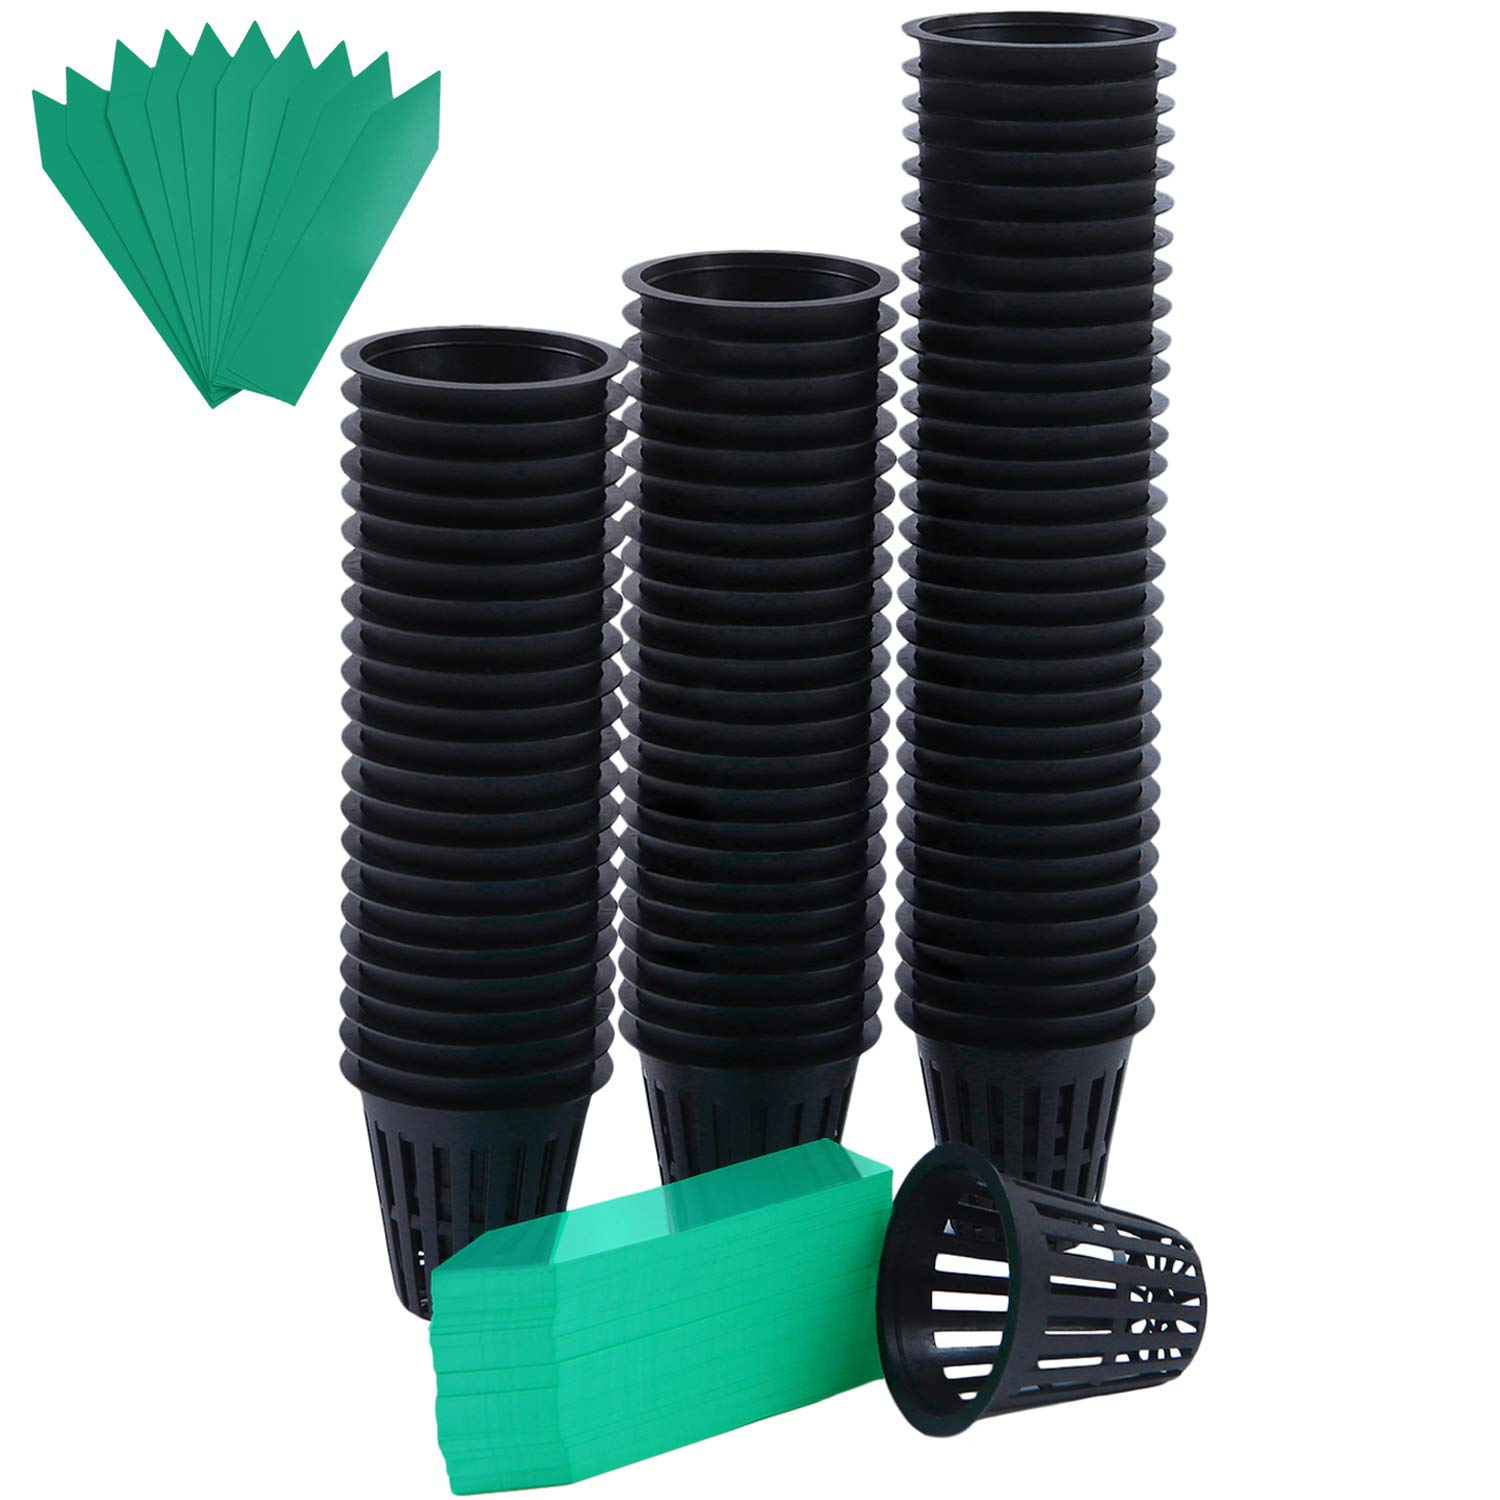 Resinta 80 Pack 2 Inches Garden Net Cups Pots Plastic Plant Slotted Mesh Net Cups and 100 Pieces Plant Labels by Resinta